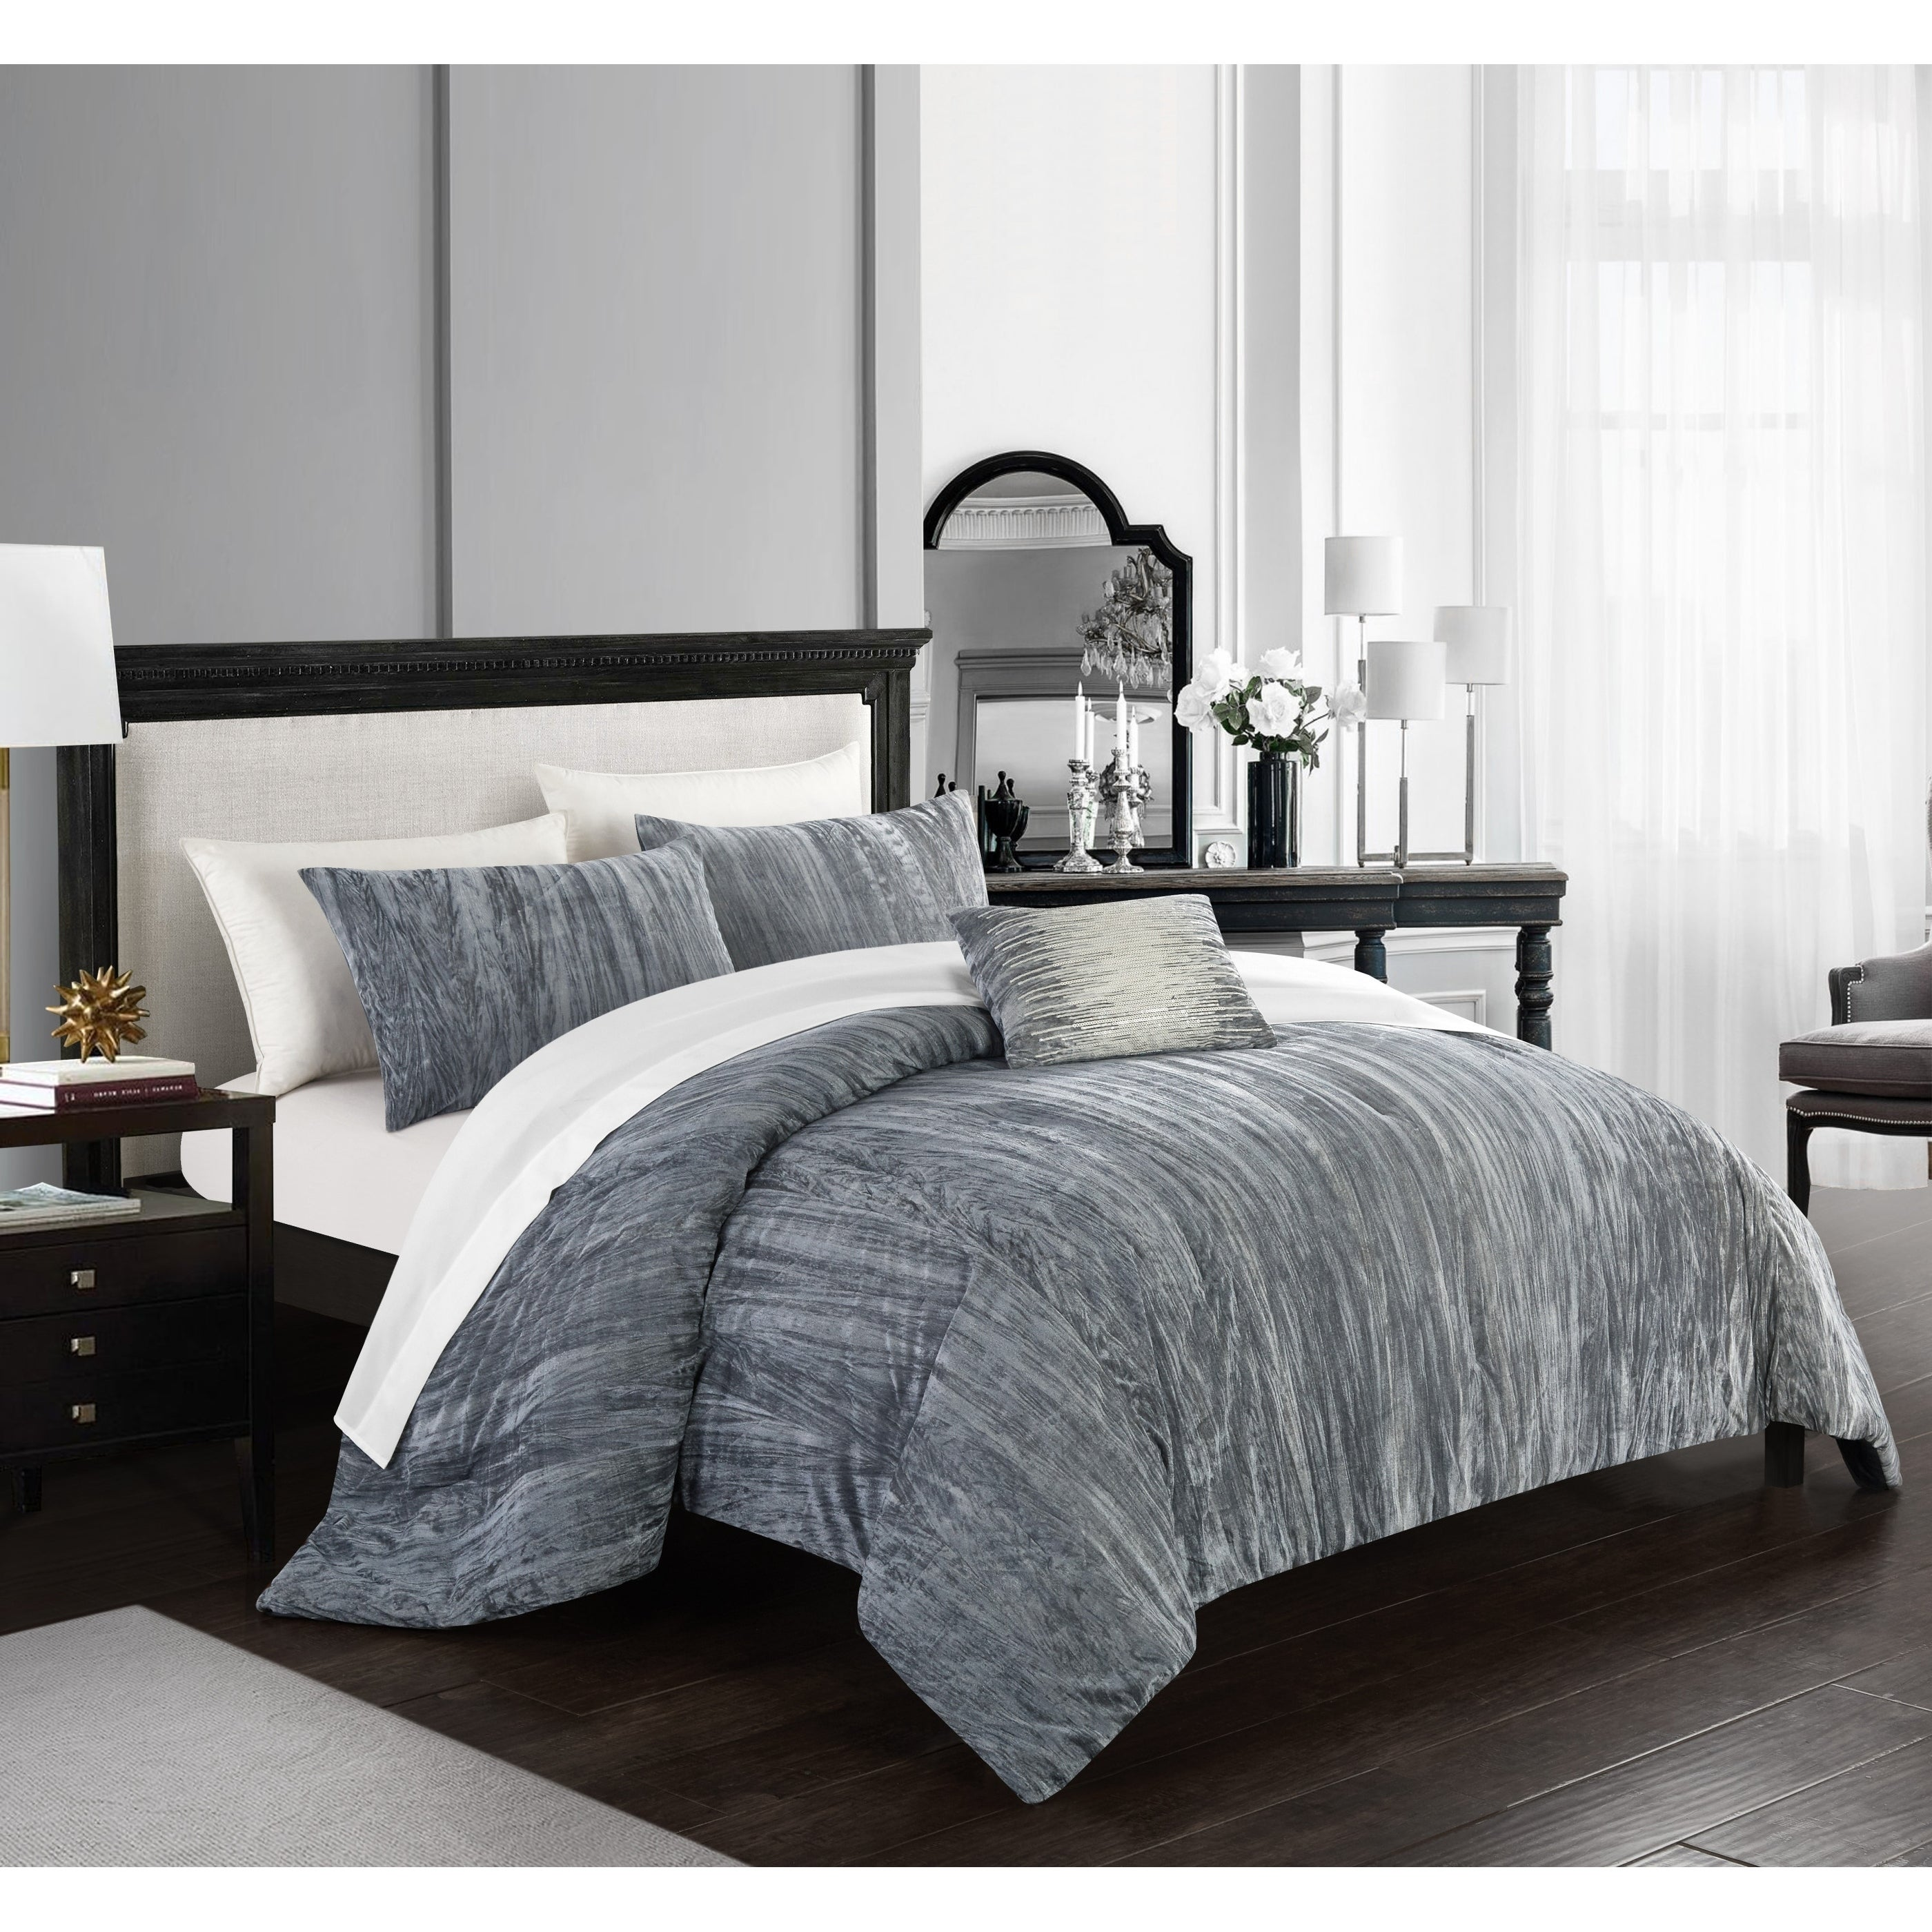 ff9110a0064c6 Shop Chic Home Kerk 4 Piece Comforter Set Crinkle Crushed Velvet Bedding -  On Sale - Free Shipping Today - Overstock - 23560988